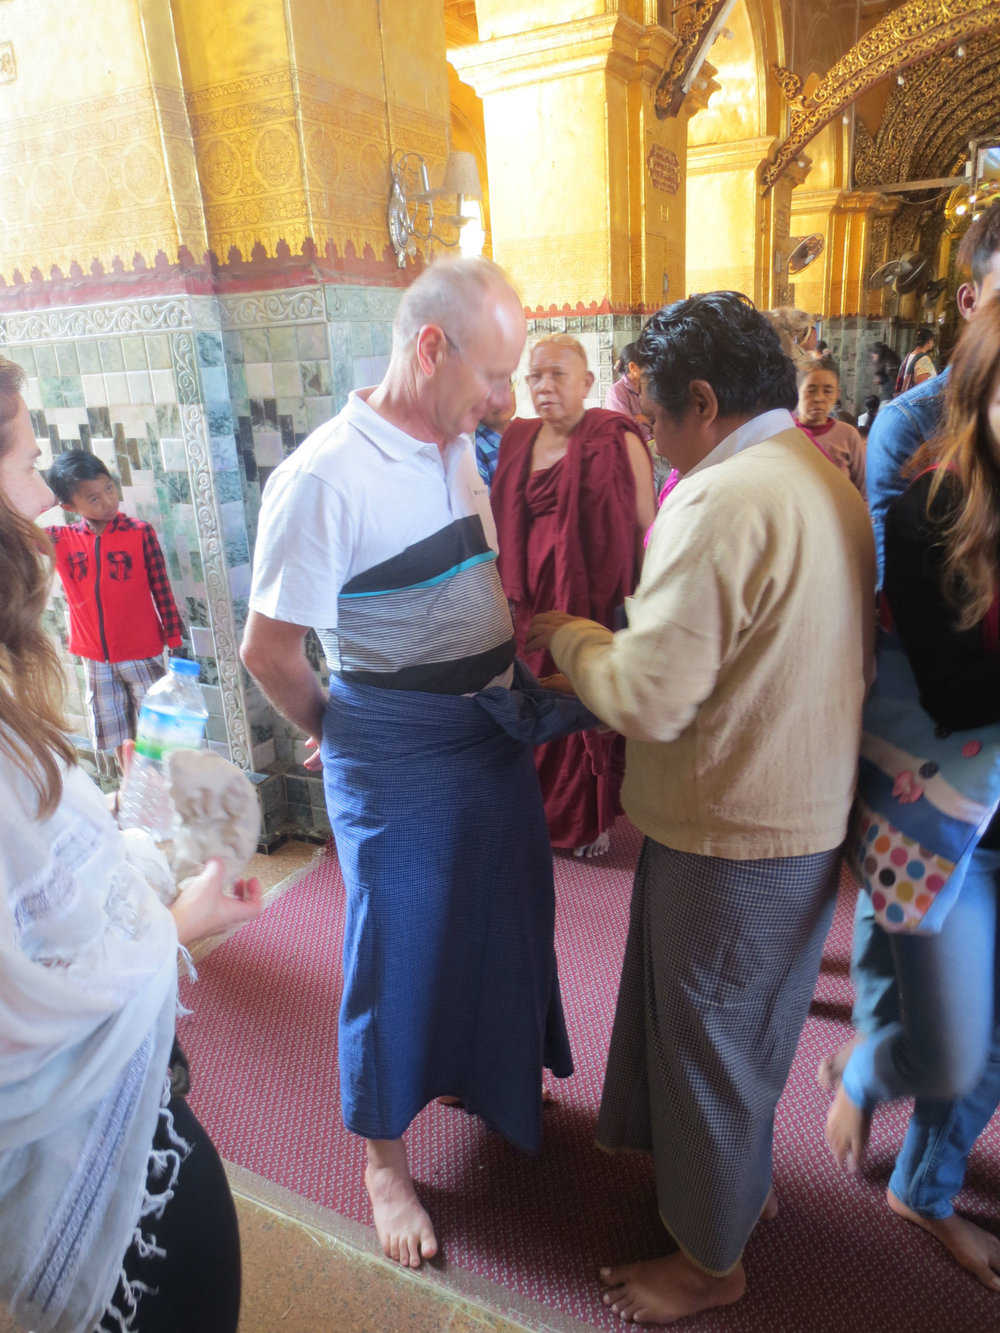 Fitting a Longyi before entering a temple